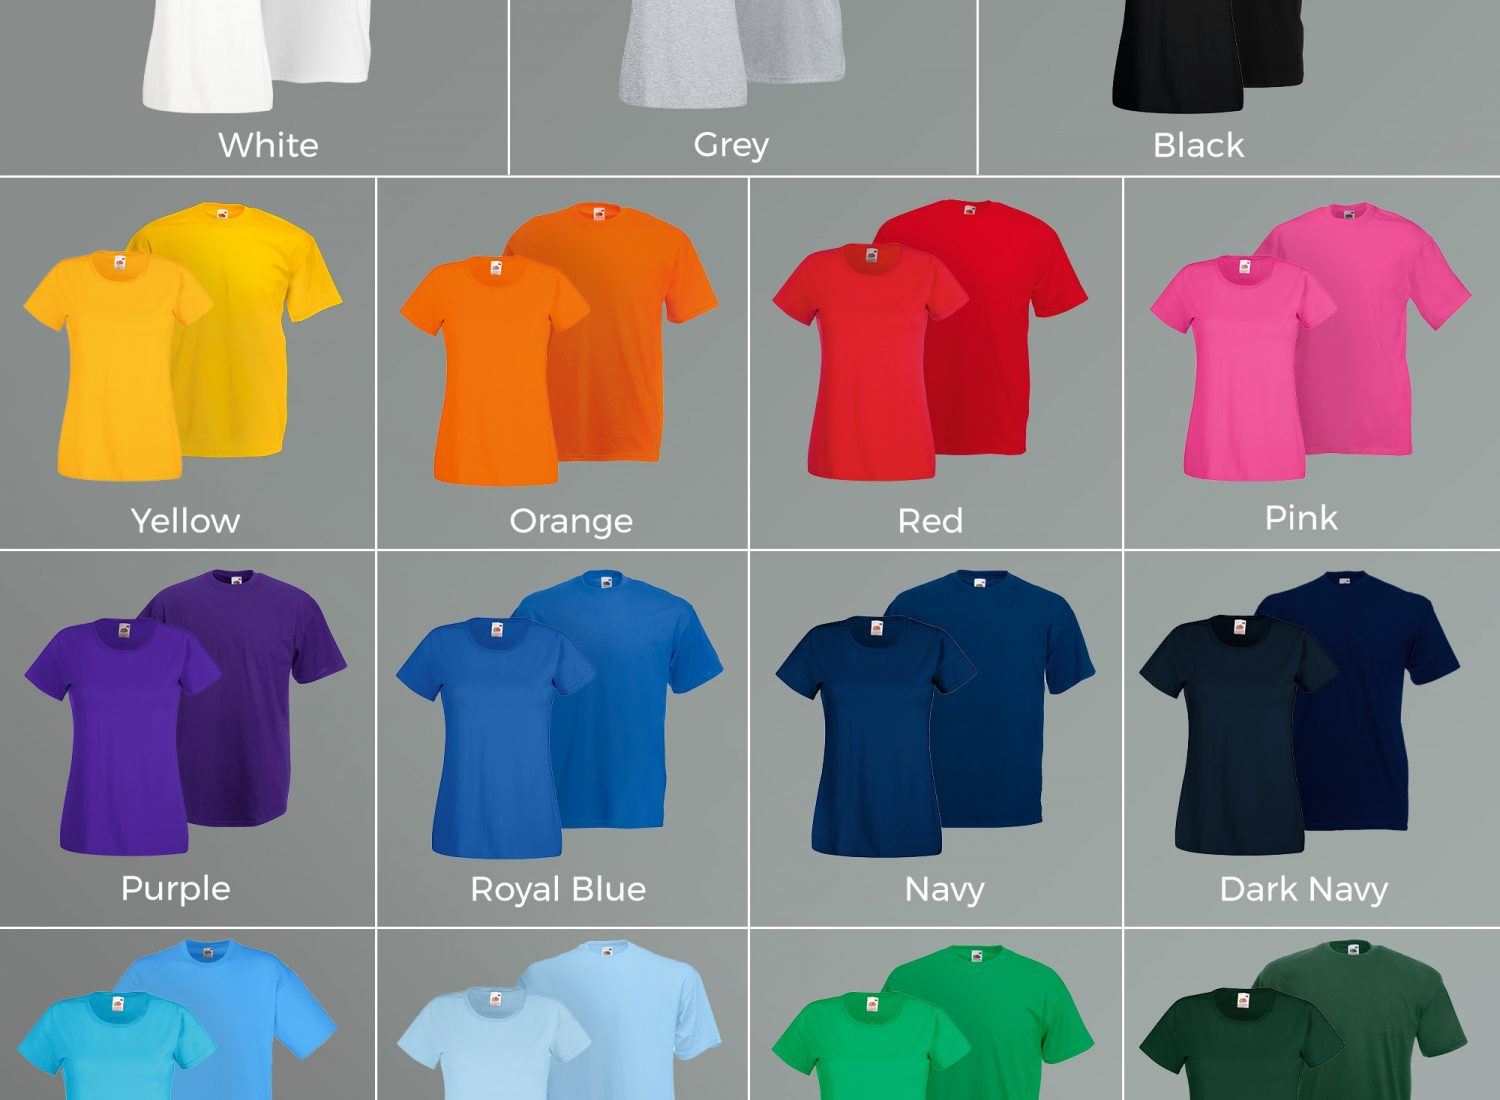 T-Shirt printing service for your business